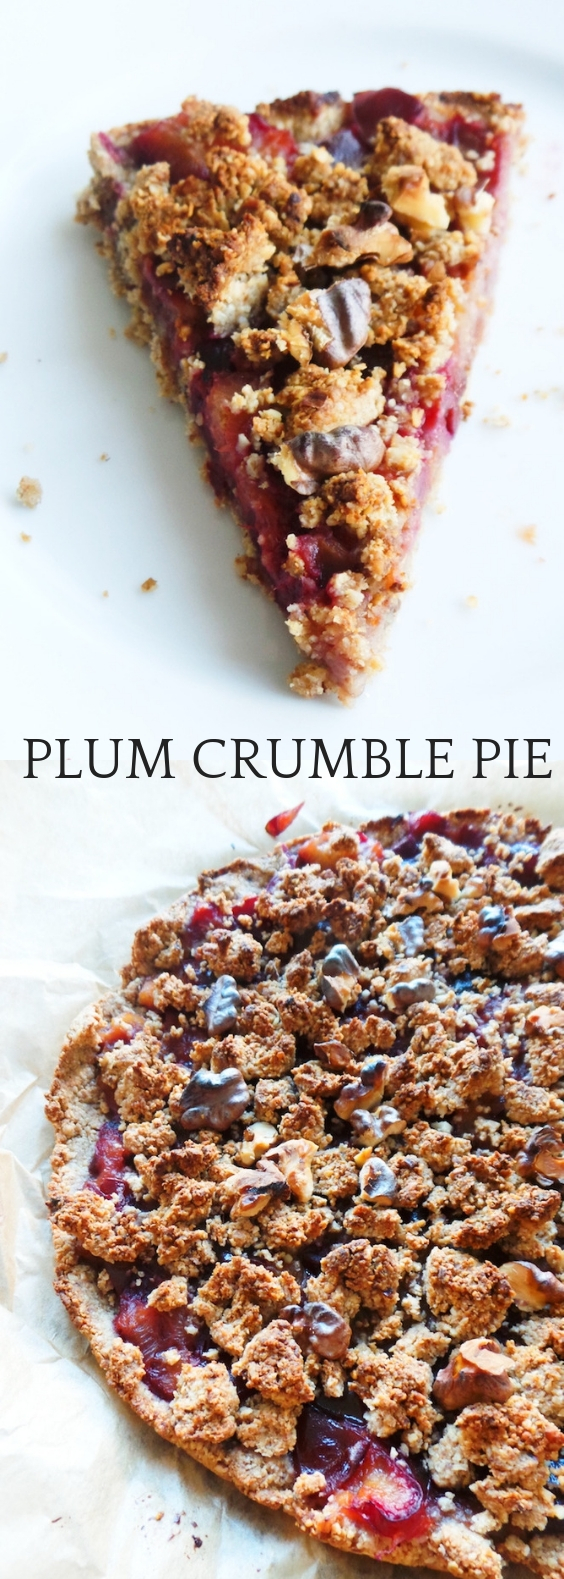 Healthy Plum Pie! This plum crumble pie is delicious, easy and vegan. Try this easy plum recipe for a meal prep breakfast or as a not-so-sweet, tasty and healthy dessert.